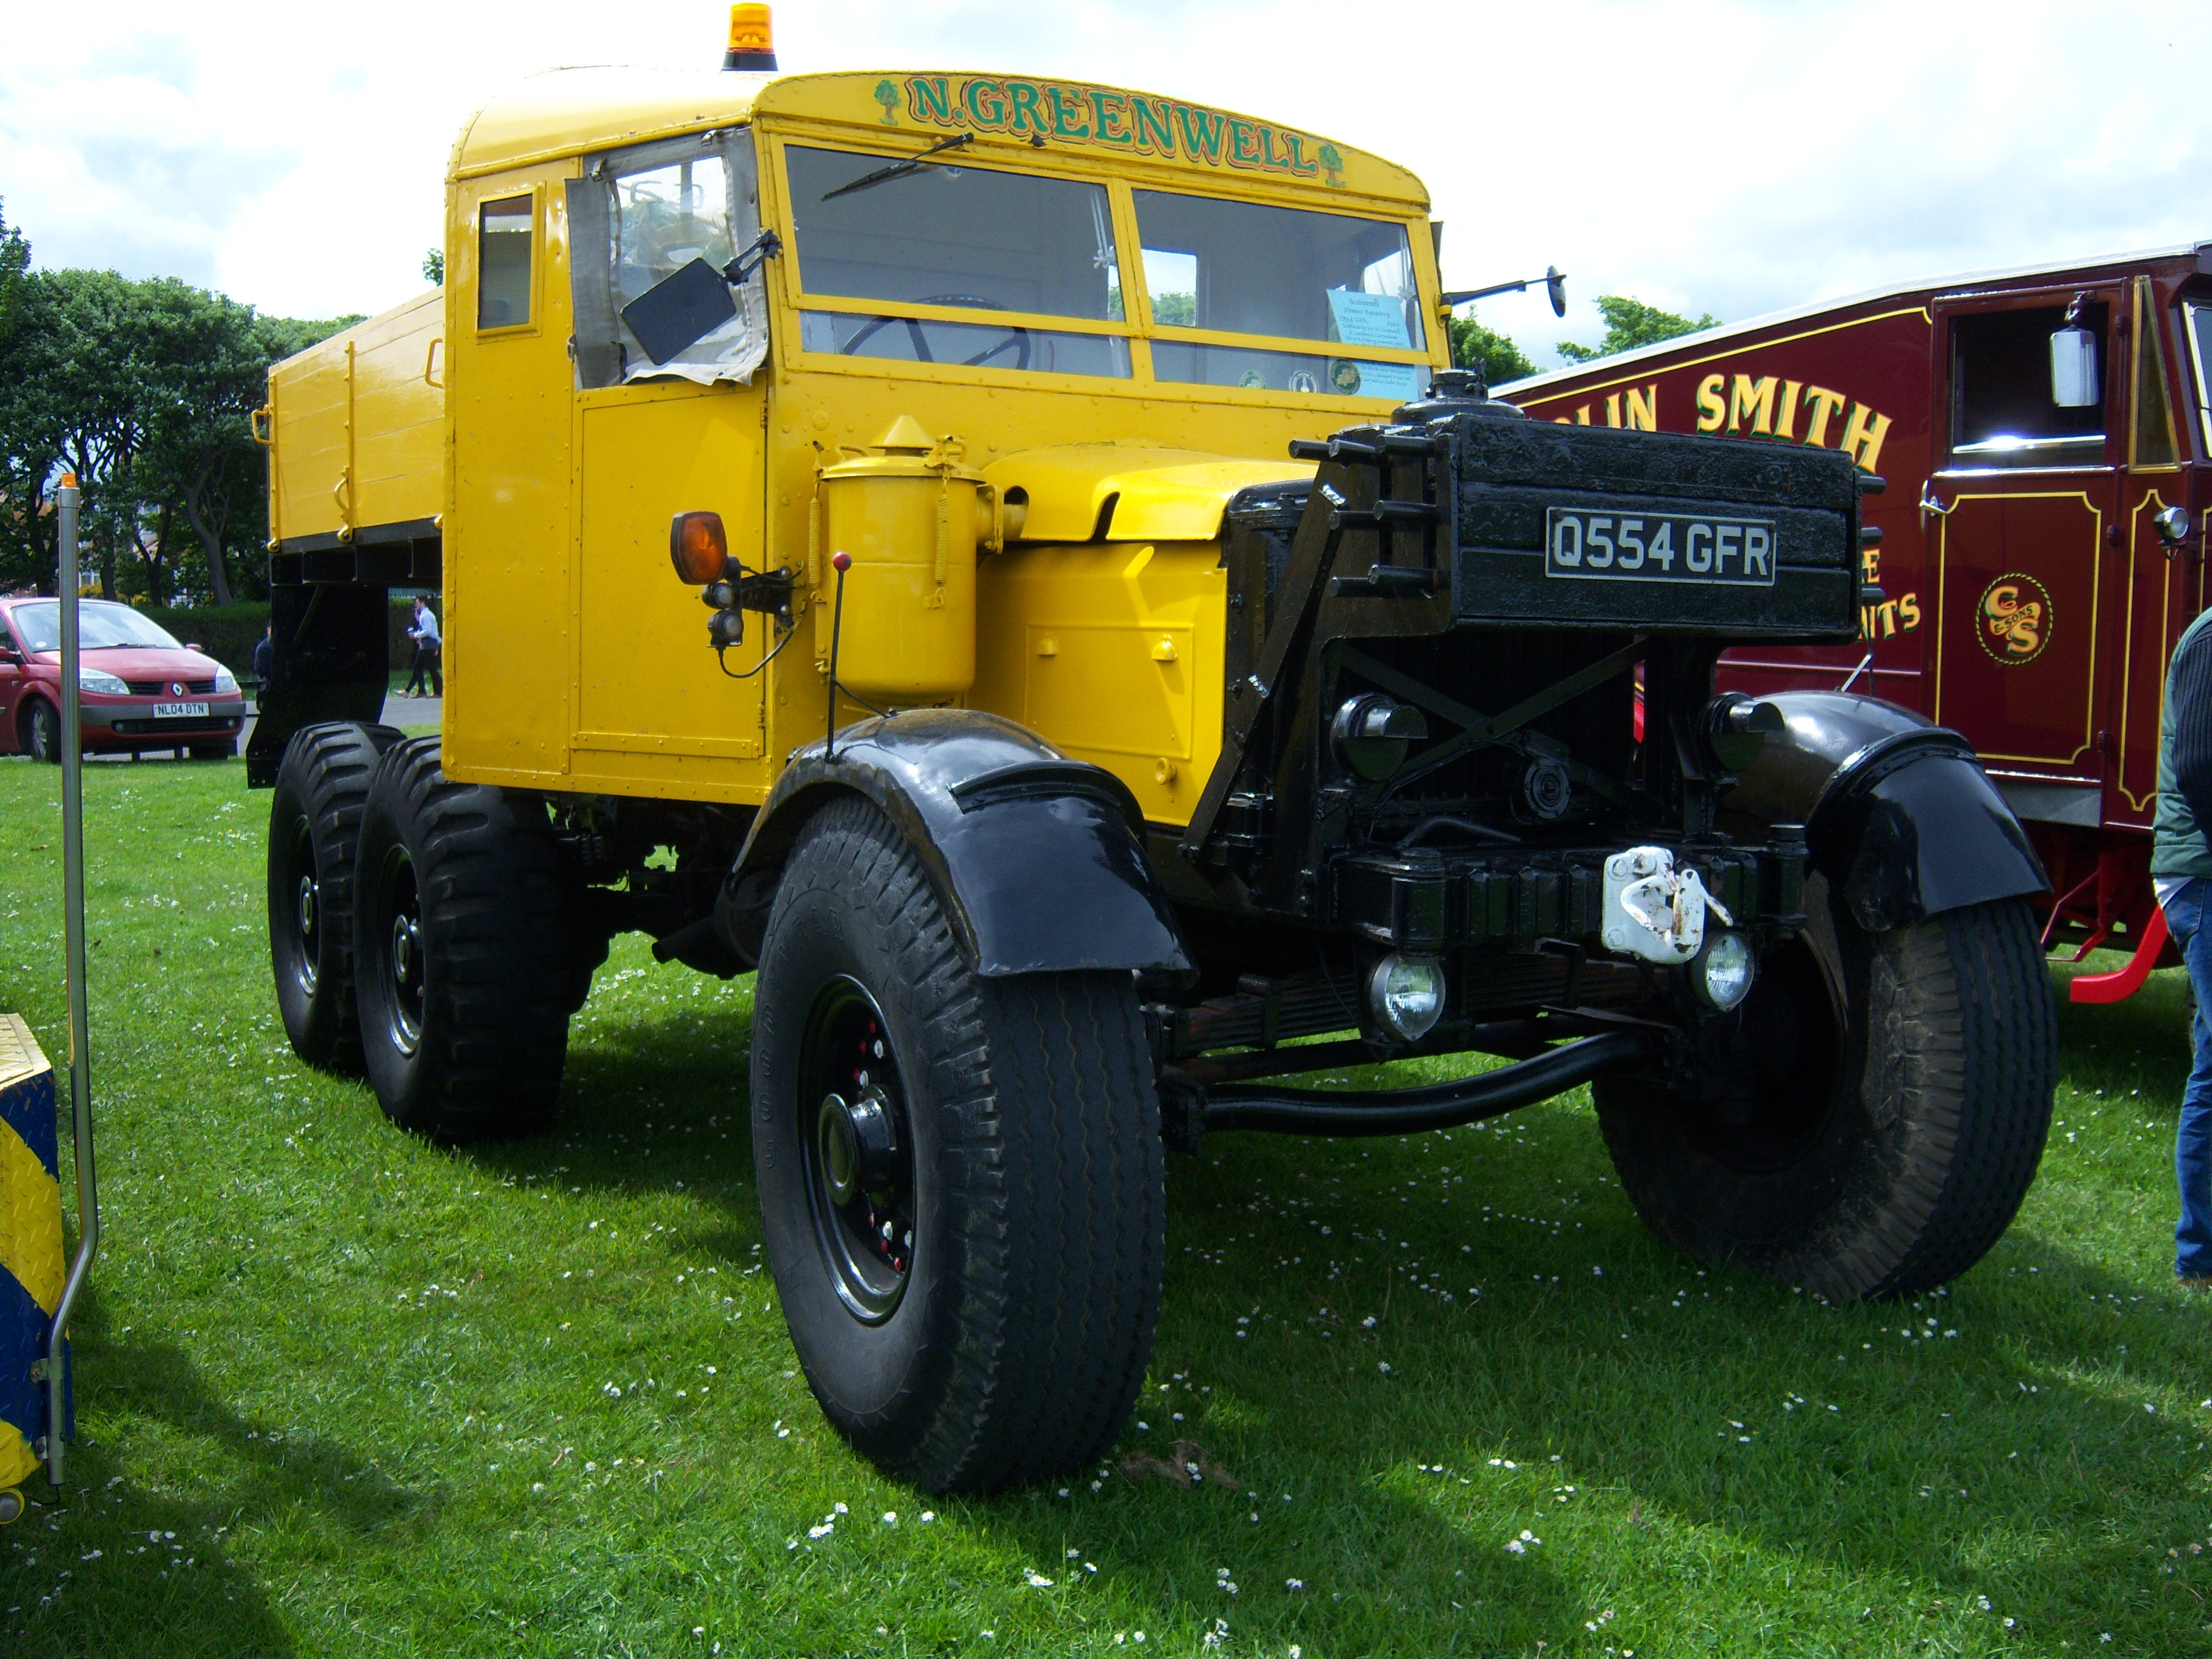 Scammell tractor photo - 6